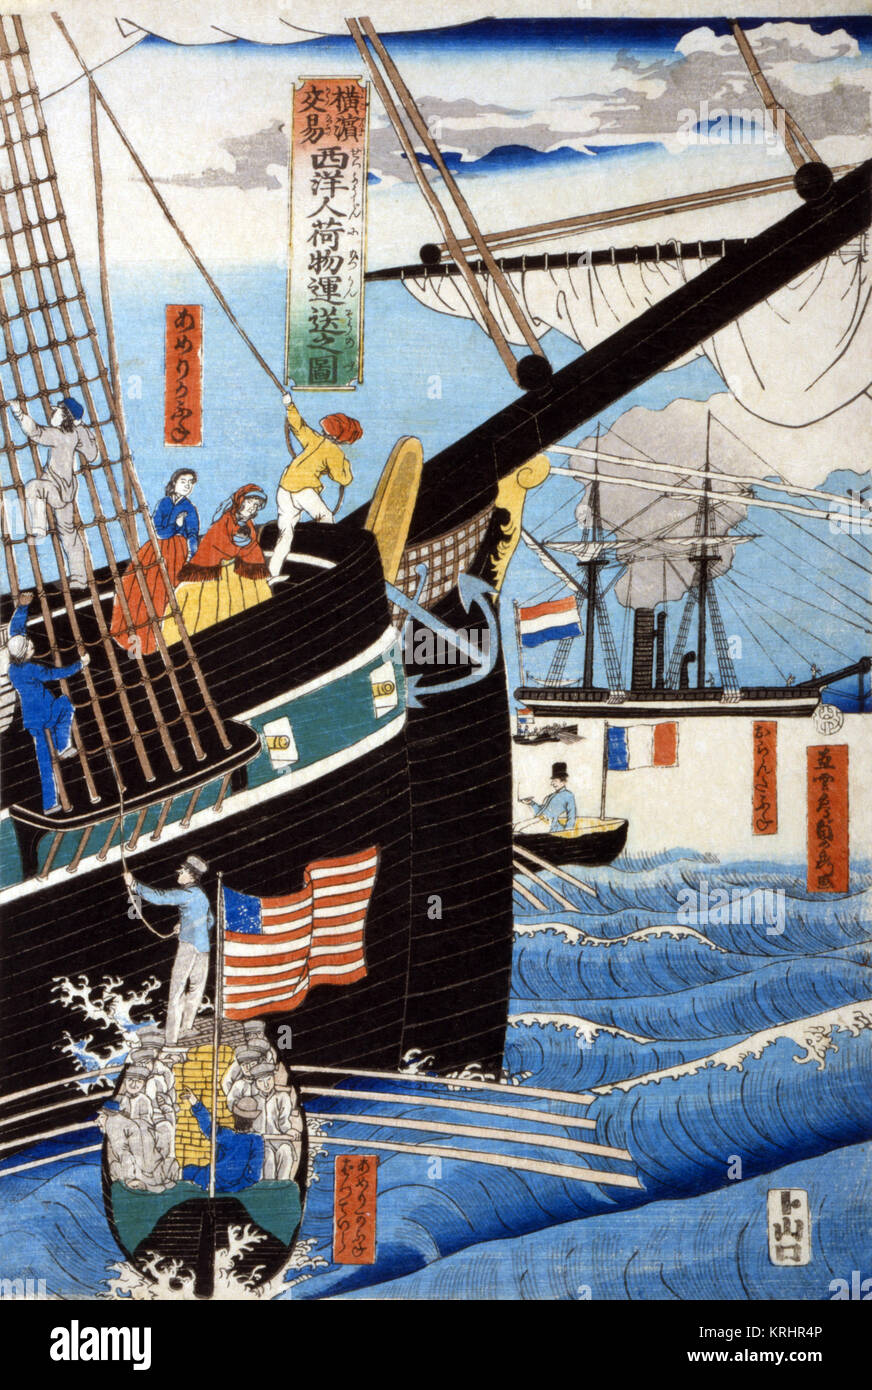 Western traders at Yokohama transporting merchandise and westerners - Stock Image